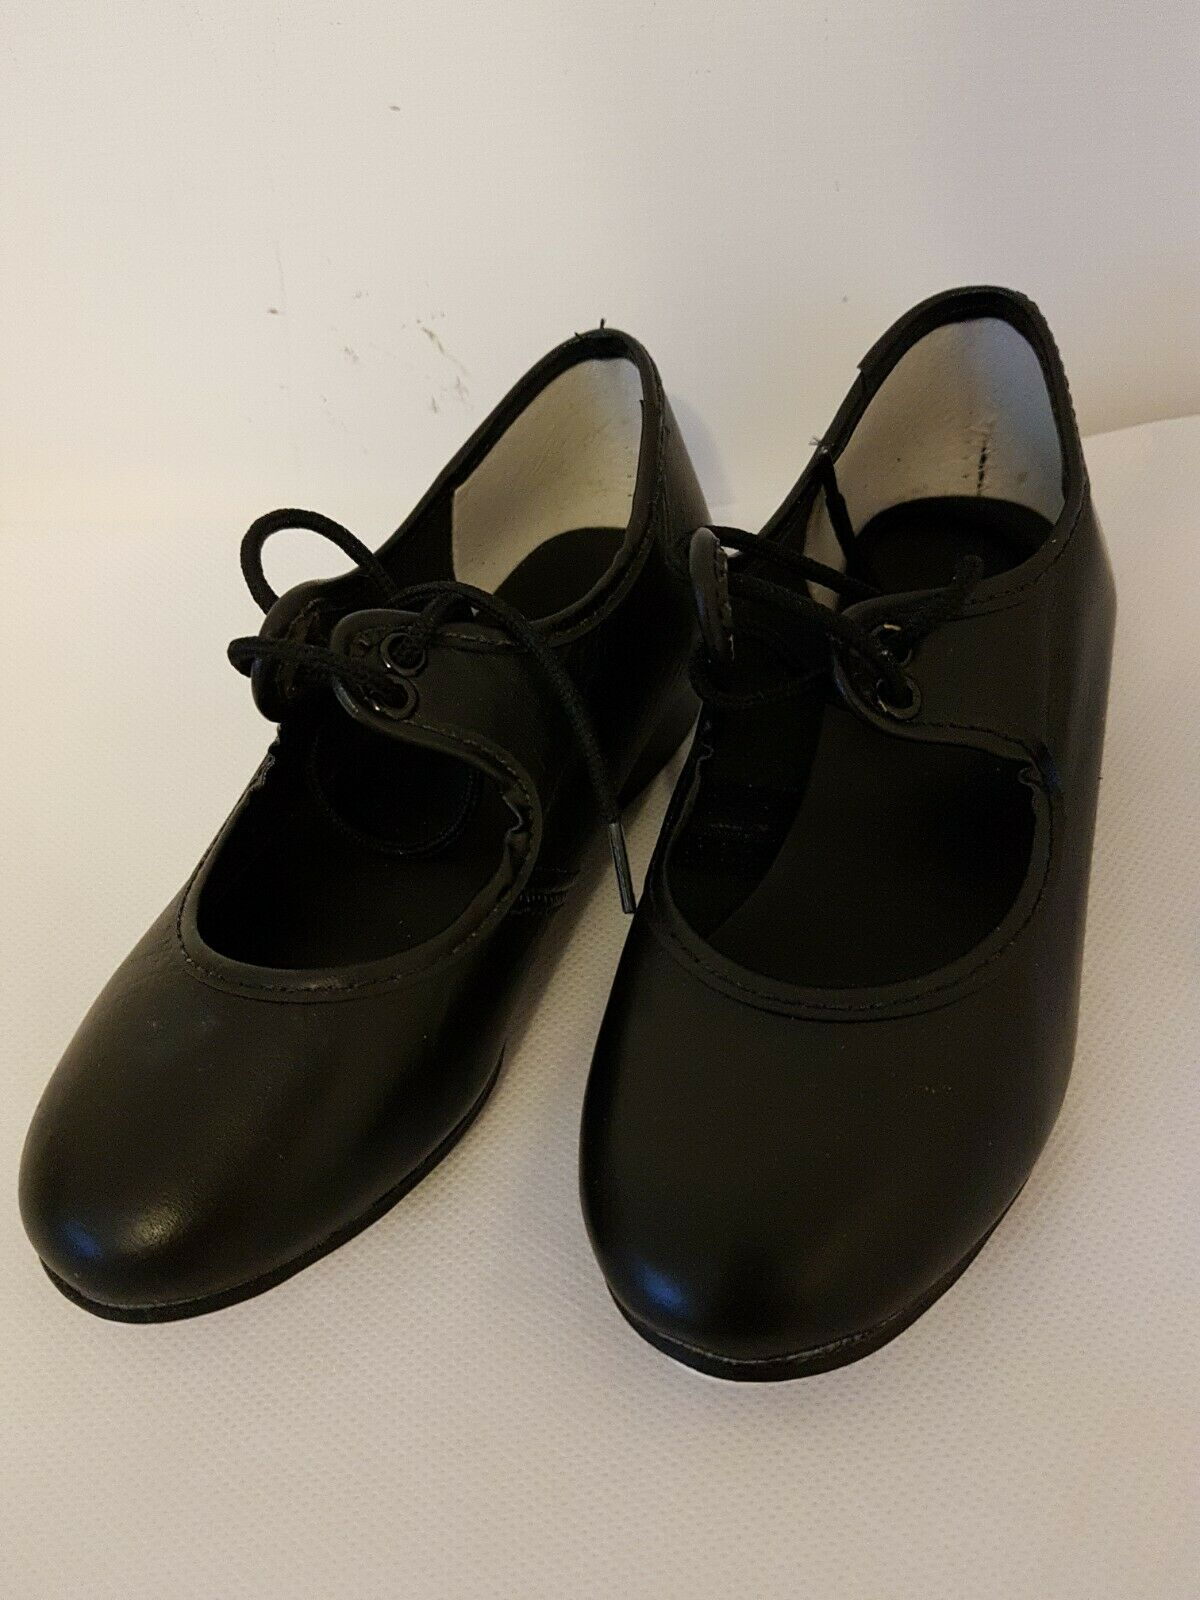 childrens tap dance shoes black leather various sizes 7,8 and 13 pick one